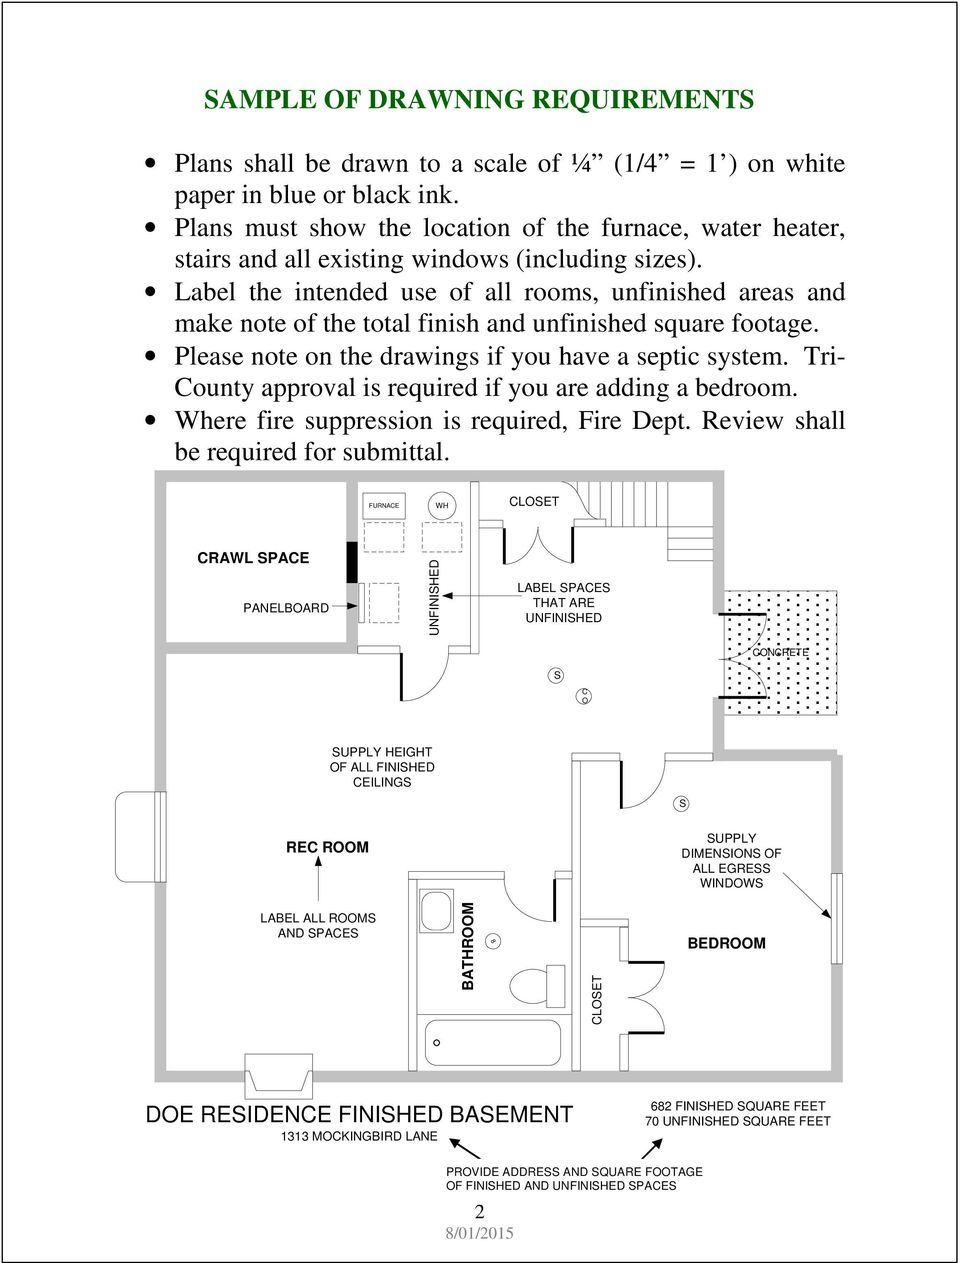 Finished Basement Requirement Guide Pdf Wiring A To Code In Ontario Label The Intended Use Of All Rooms Unfinished Areas And Make Note Total